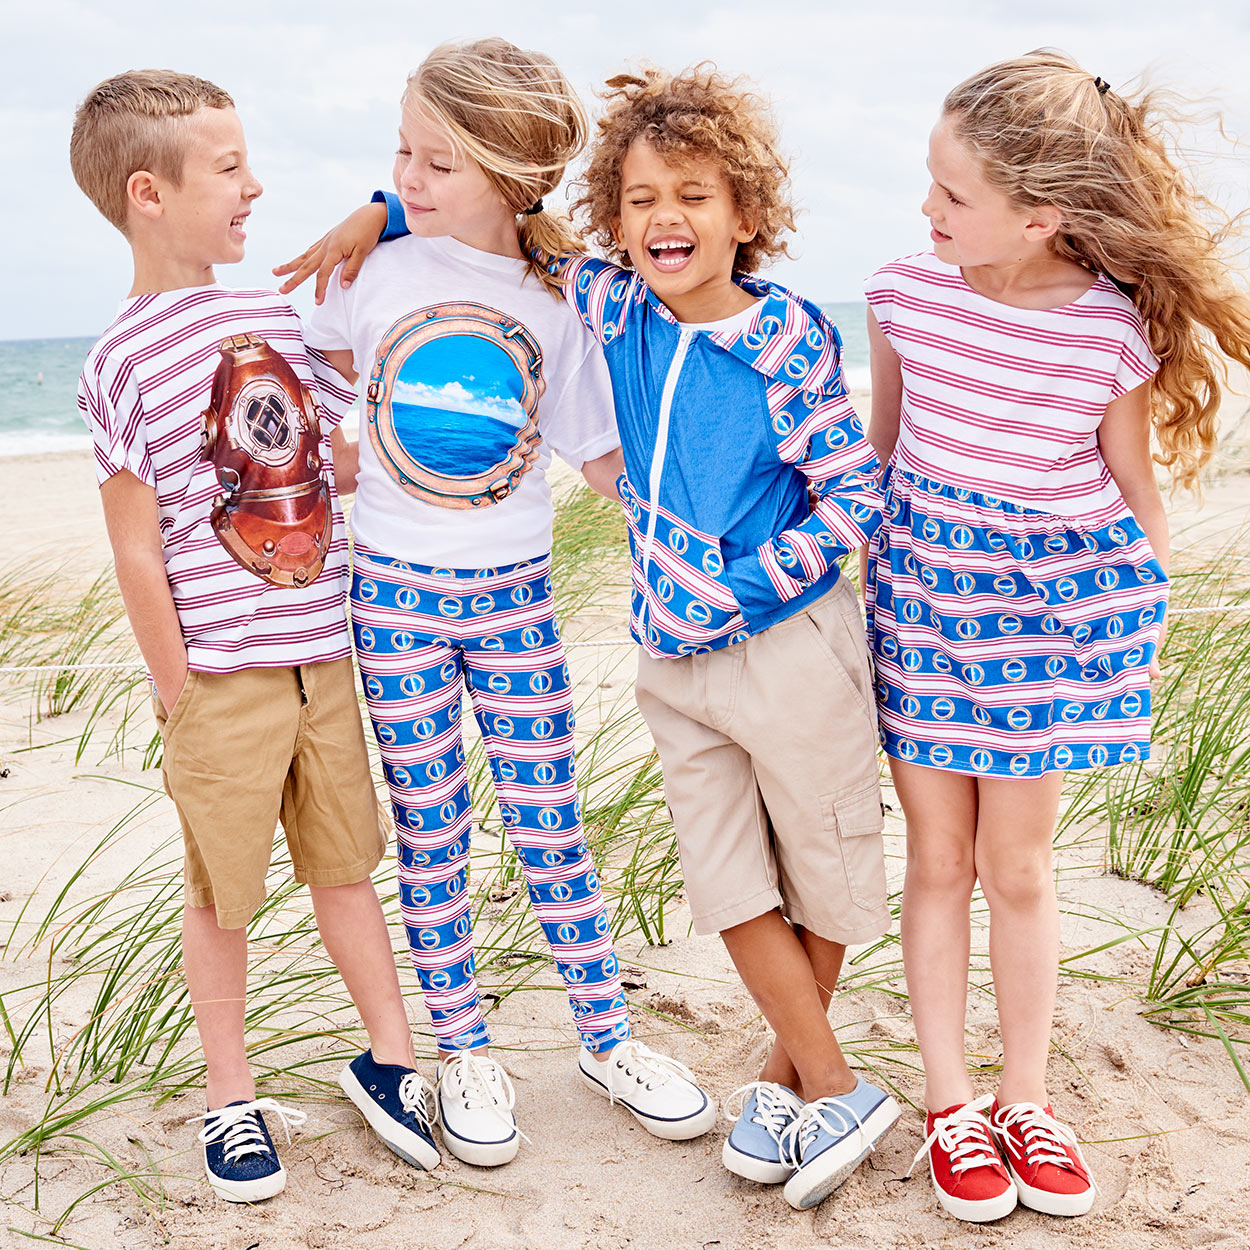 Modern Mariner Hybrid Zip Up Hoodie Upf50 Kids Boys Girls 2 12 Red White Blue Stripes Denim Portholes Unisex Wo Boys And Two Girls On The Beach Sunpoplife